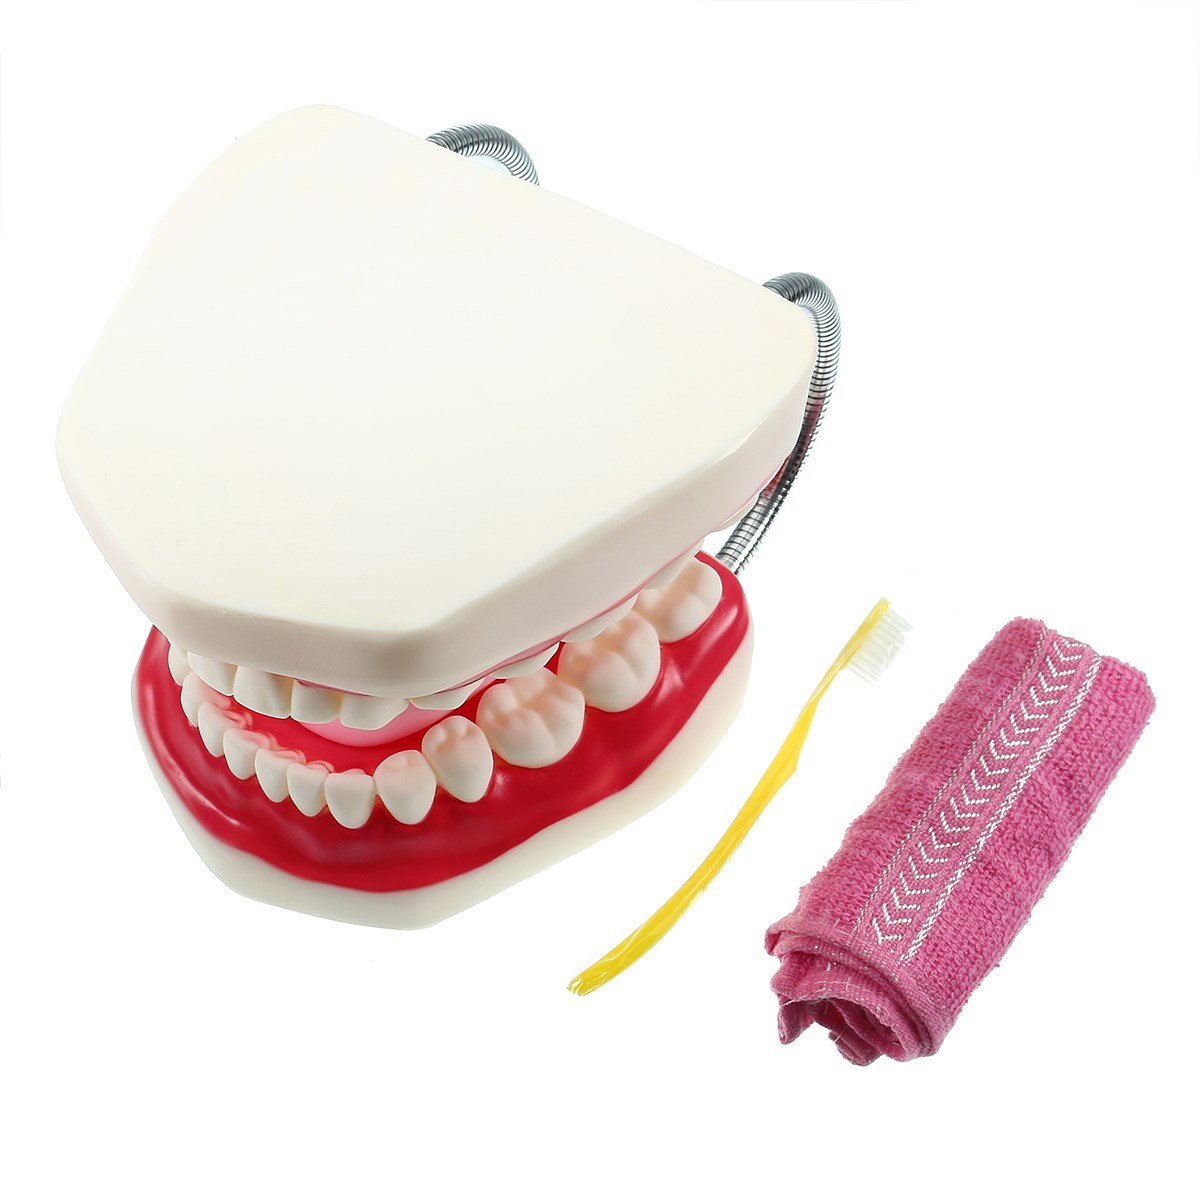 Large Dental Adult Teeth Model 6 Times Oral Models Tooth With Tongue For Kindergarten Child Early Teaching Study Health Care heymodel adult teeth model dental teaching model with dp jaw rack